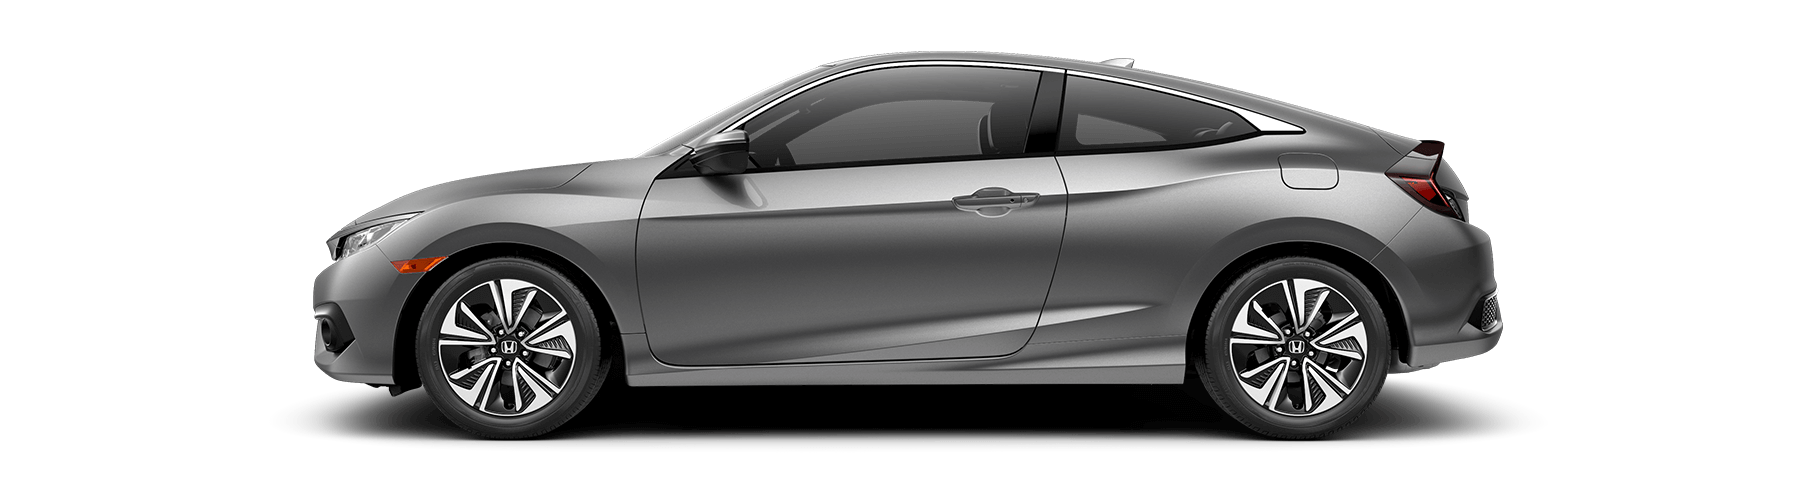 2017 Honda Civic Coupe Side Profile